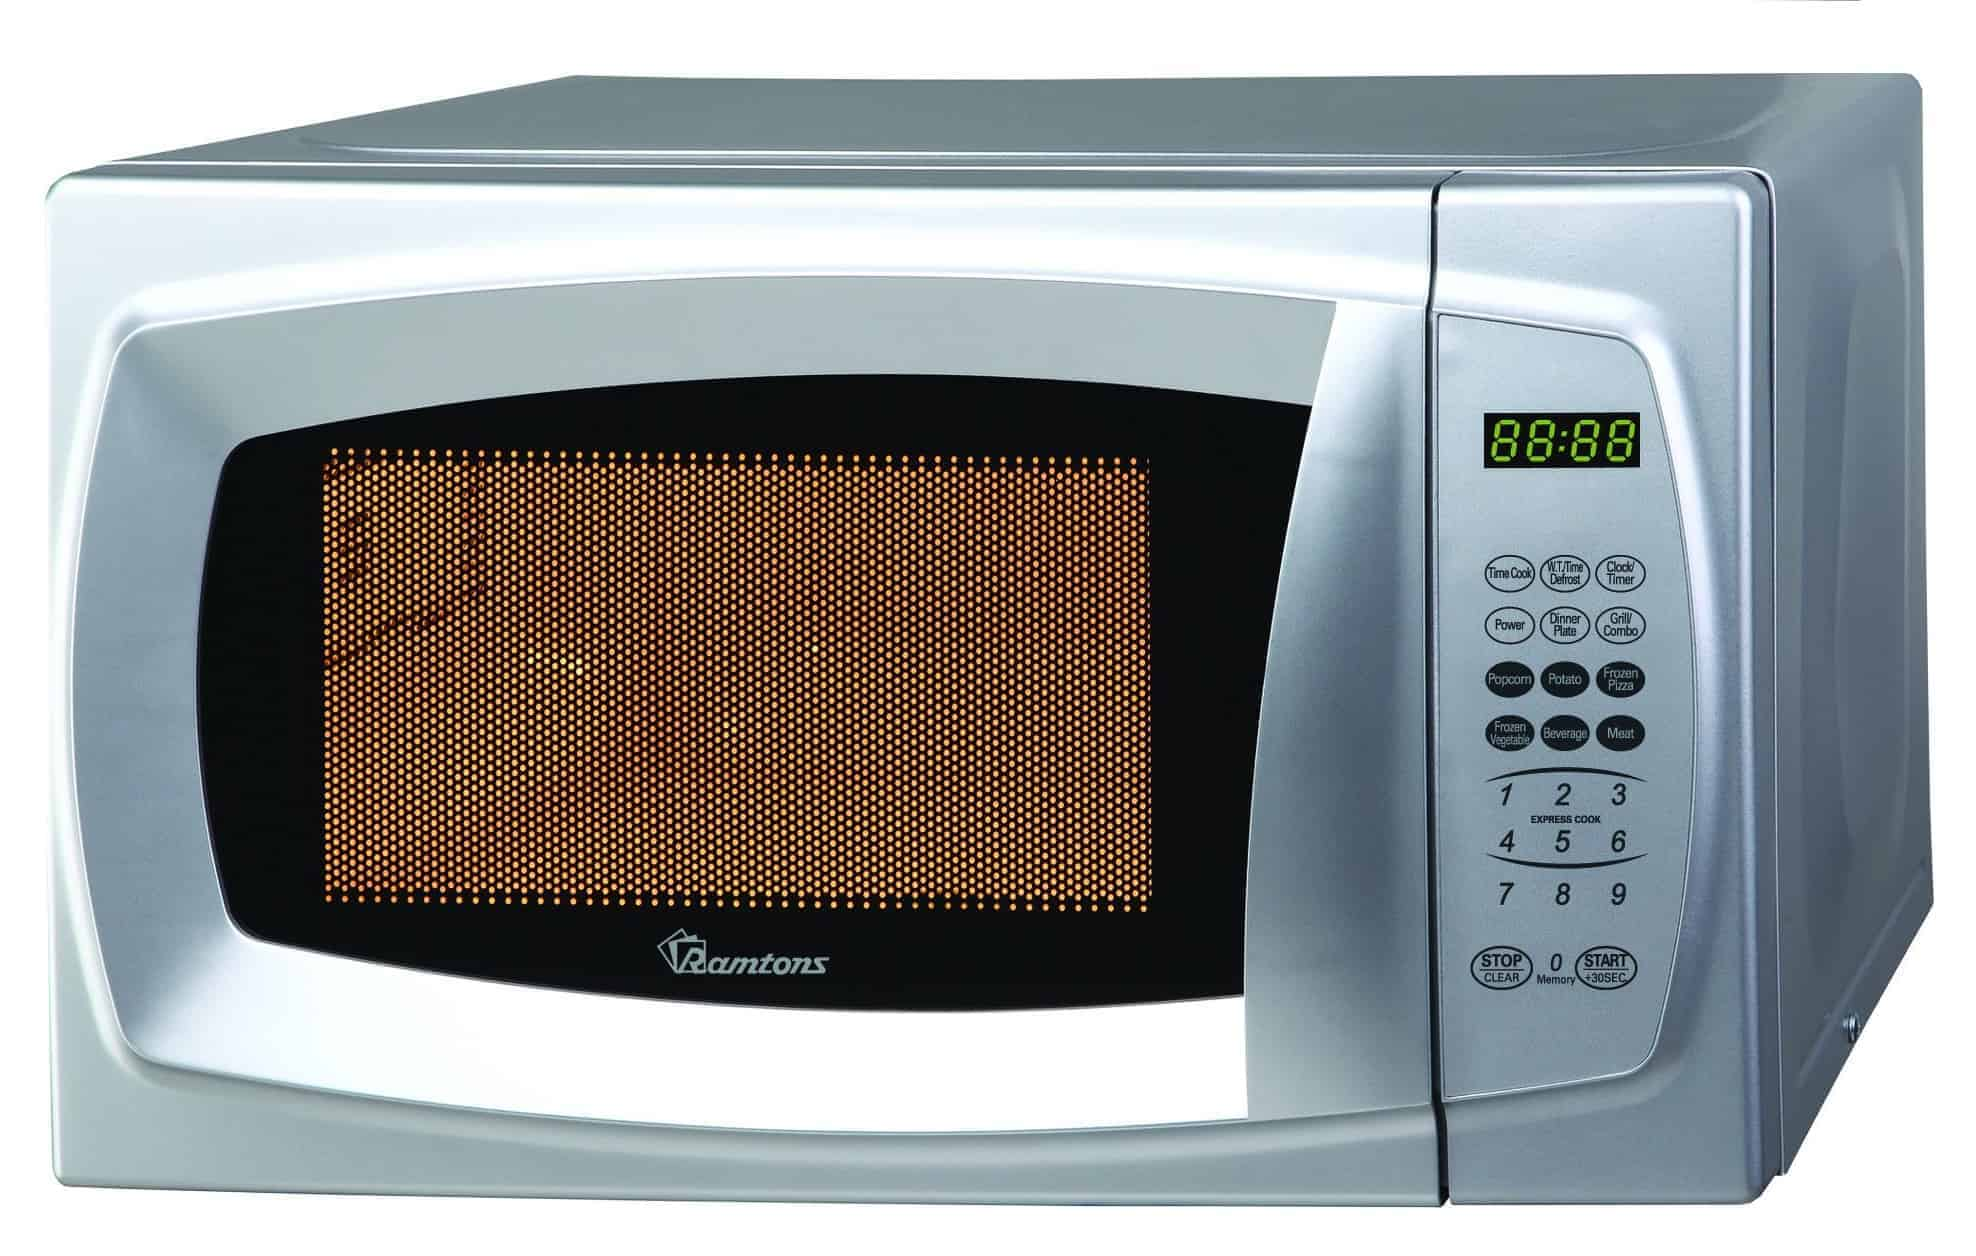 Ramtoms RM/310 Microwave Review – A Ramtoms Microwave With Grill